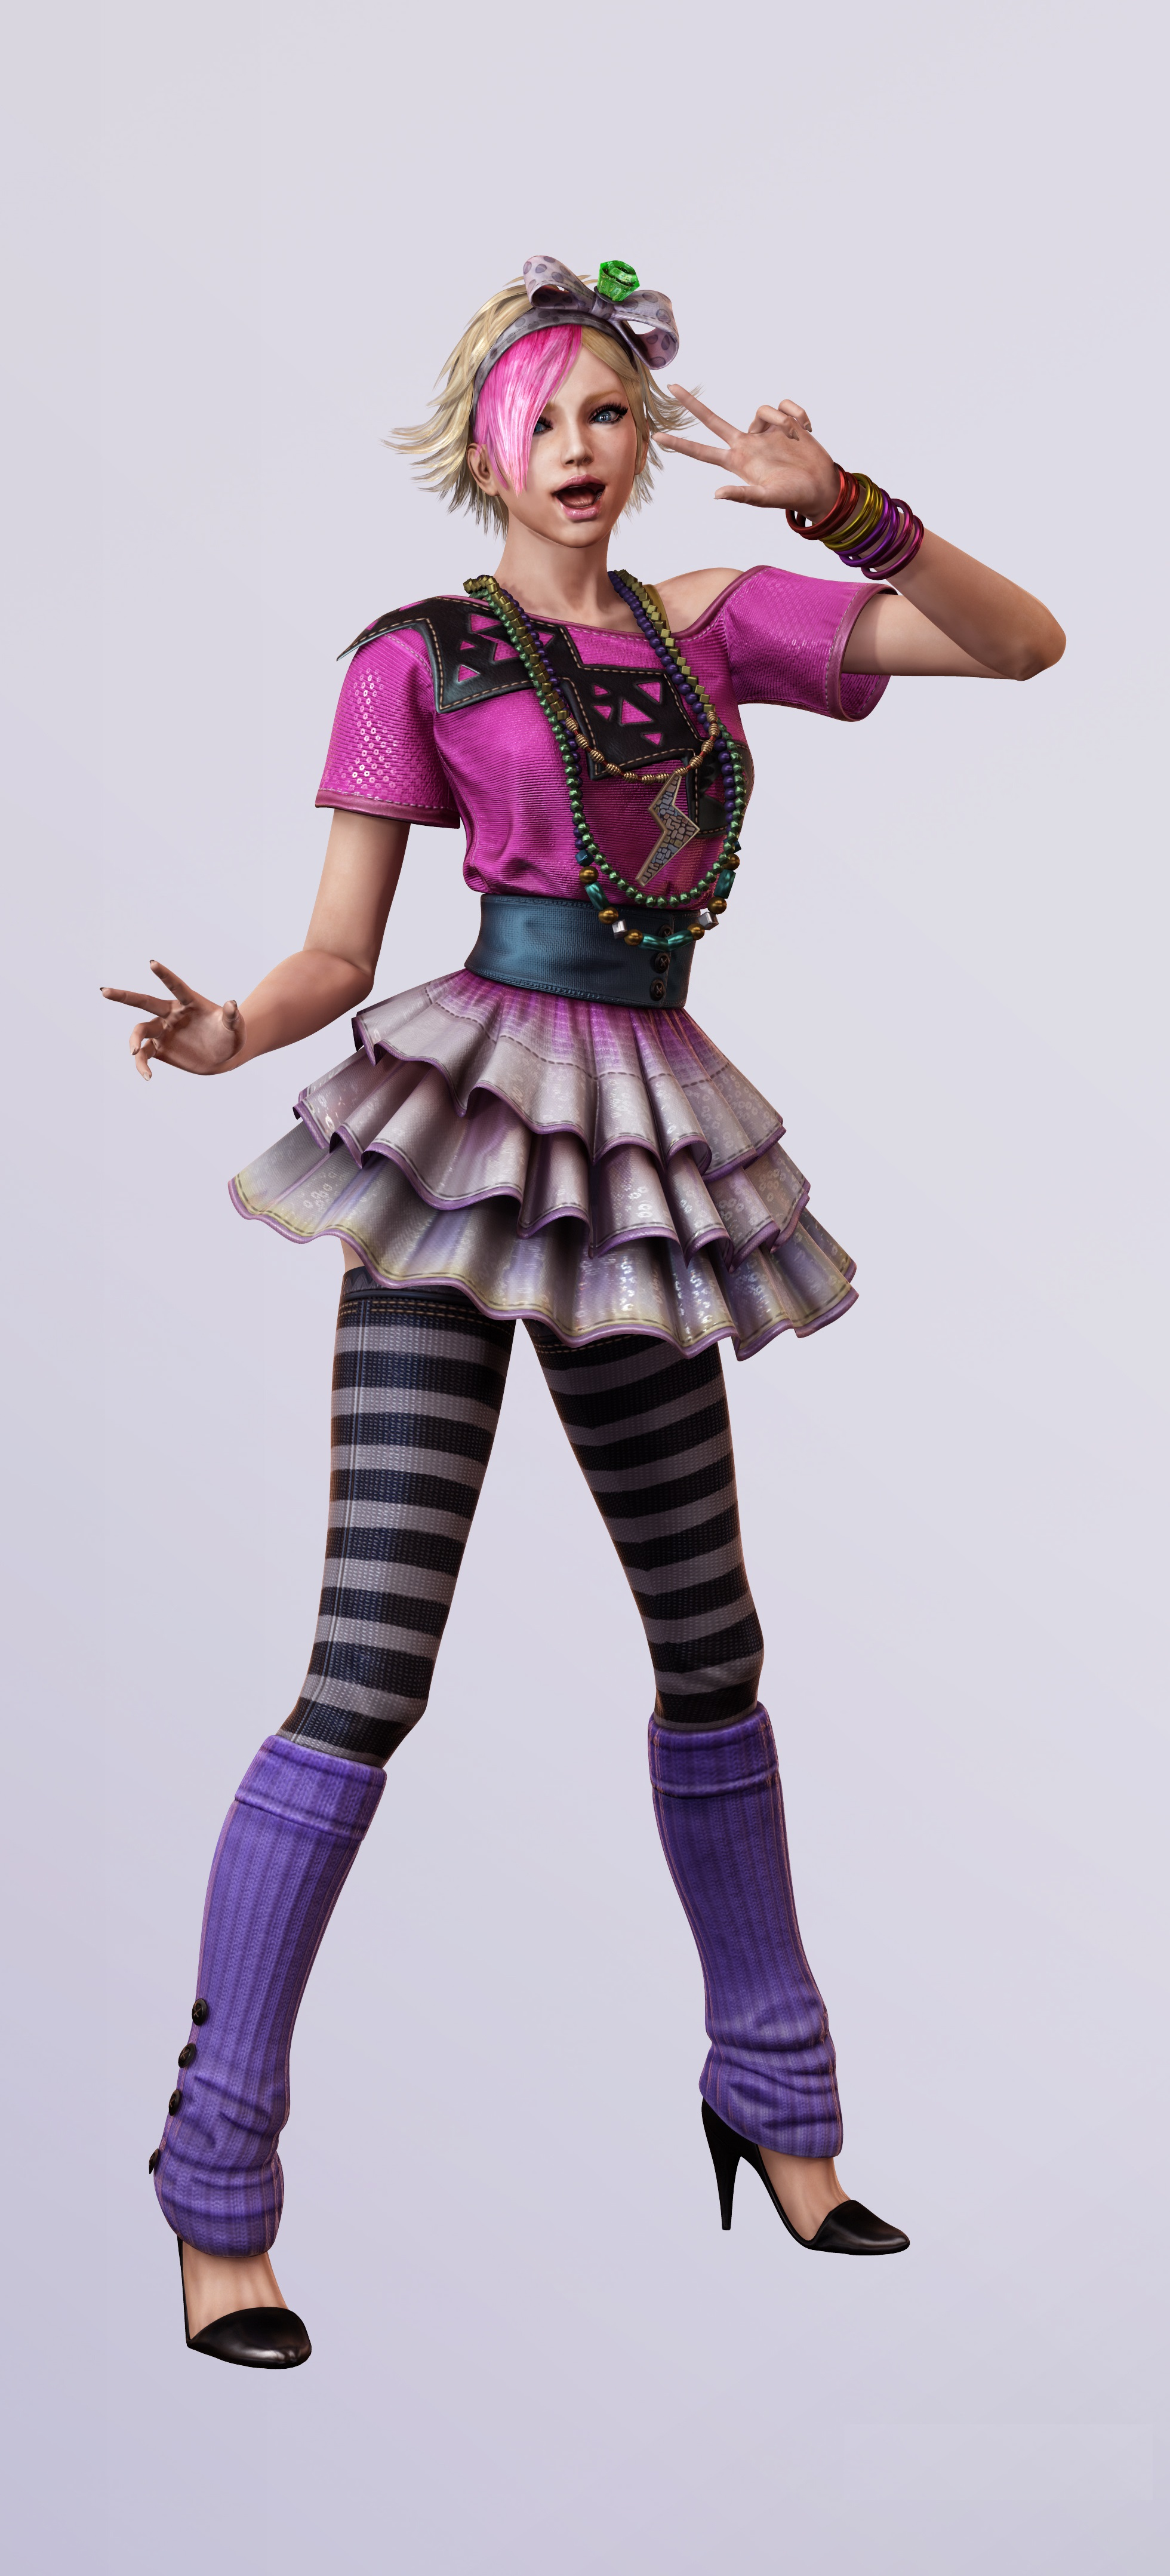 Rosalind starling lollipop chainsaw wiki fandom powered by wikia rosalind starling voltagebd Image collections